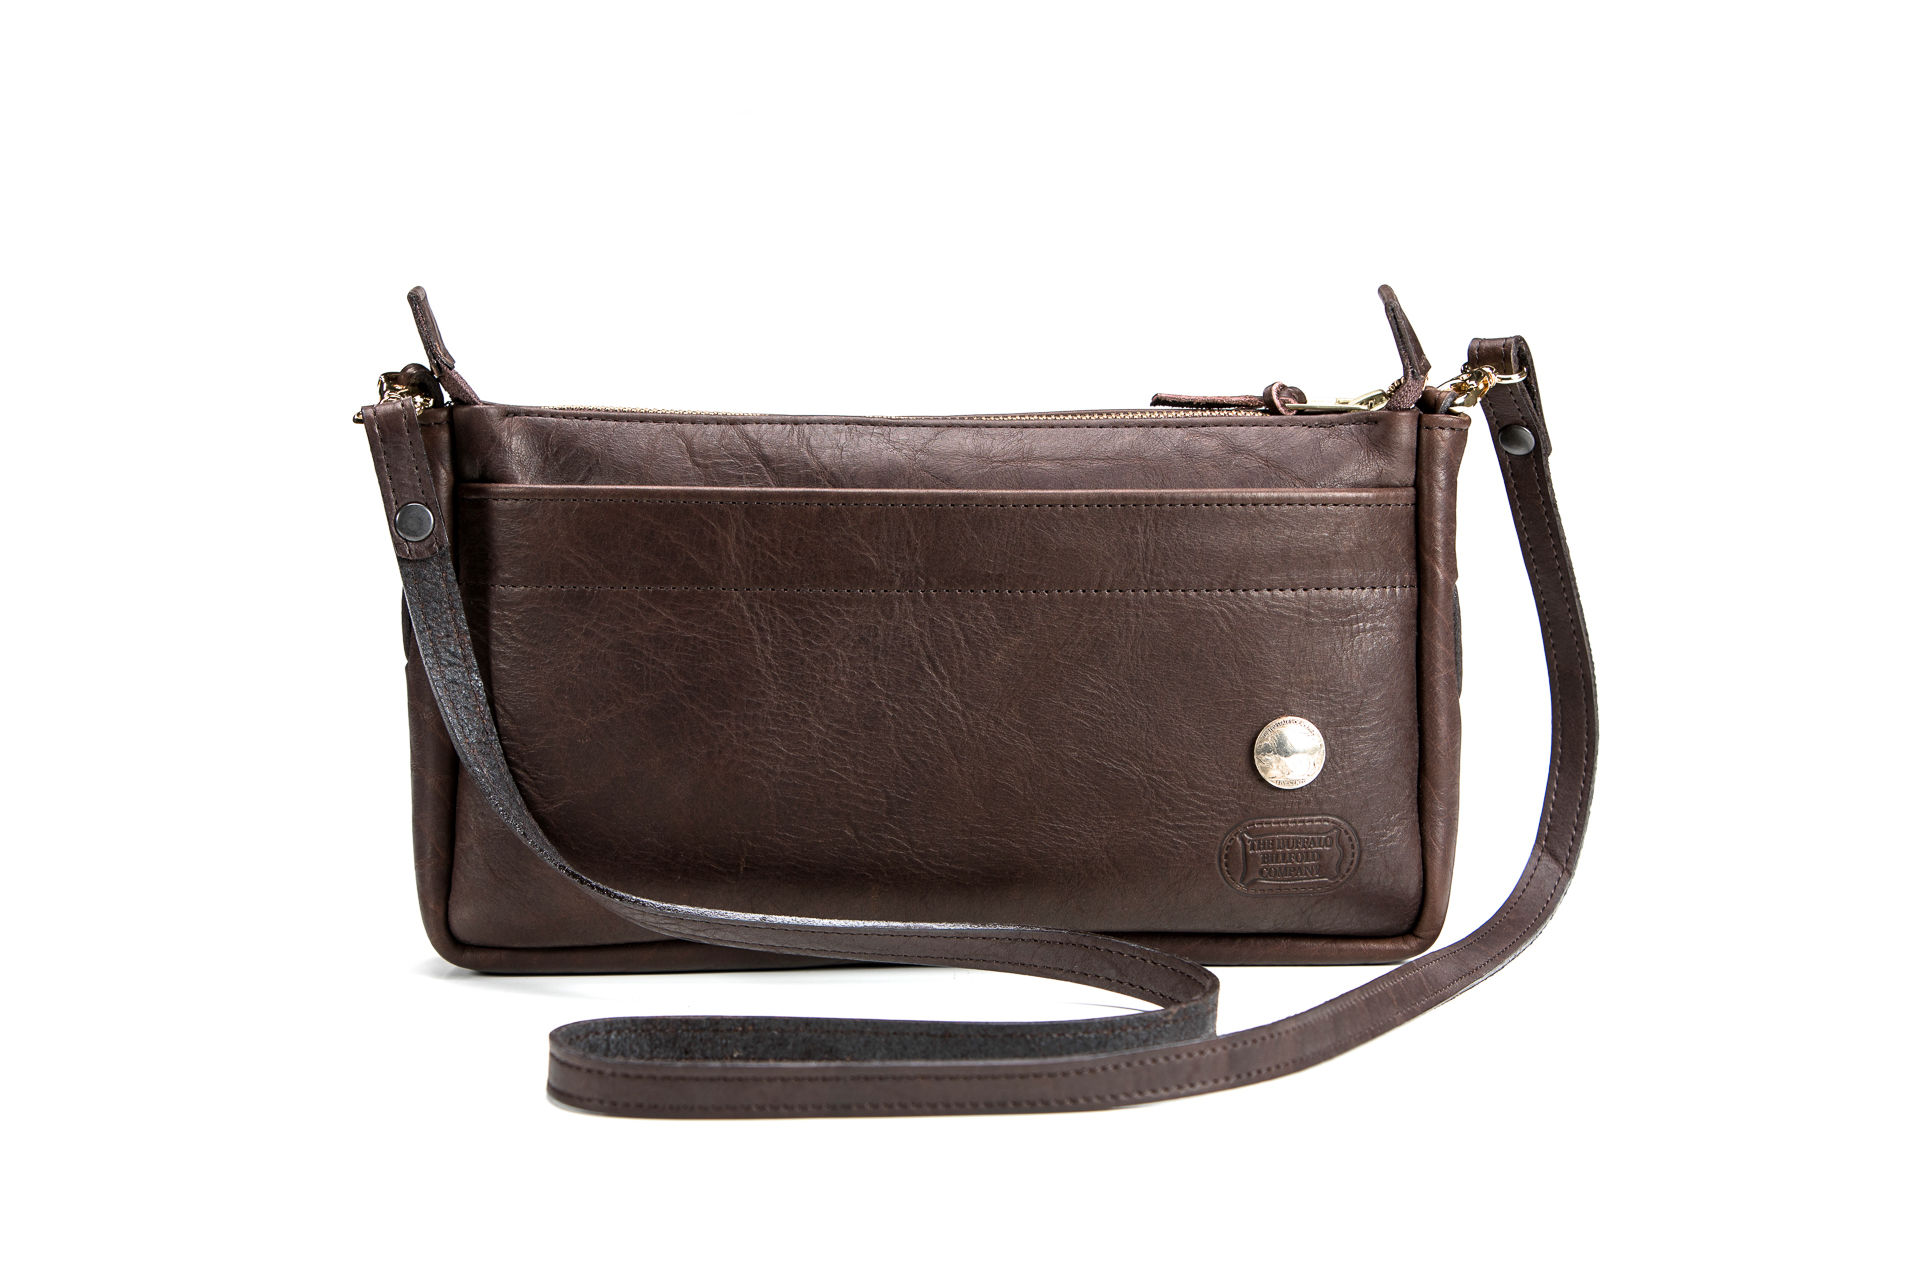 KW Buffalo Leather Purse - Made In America